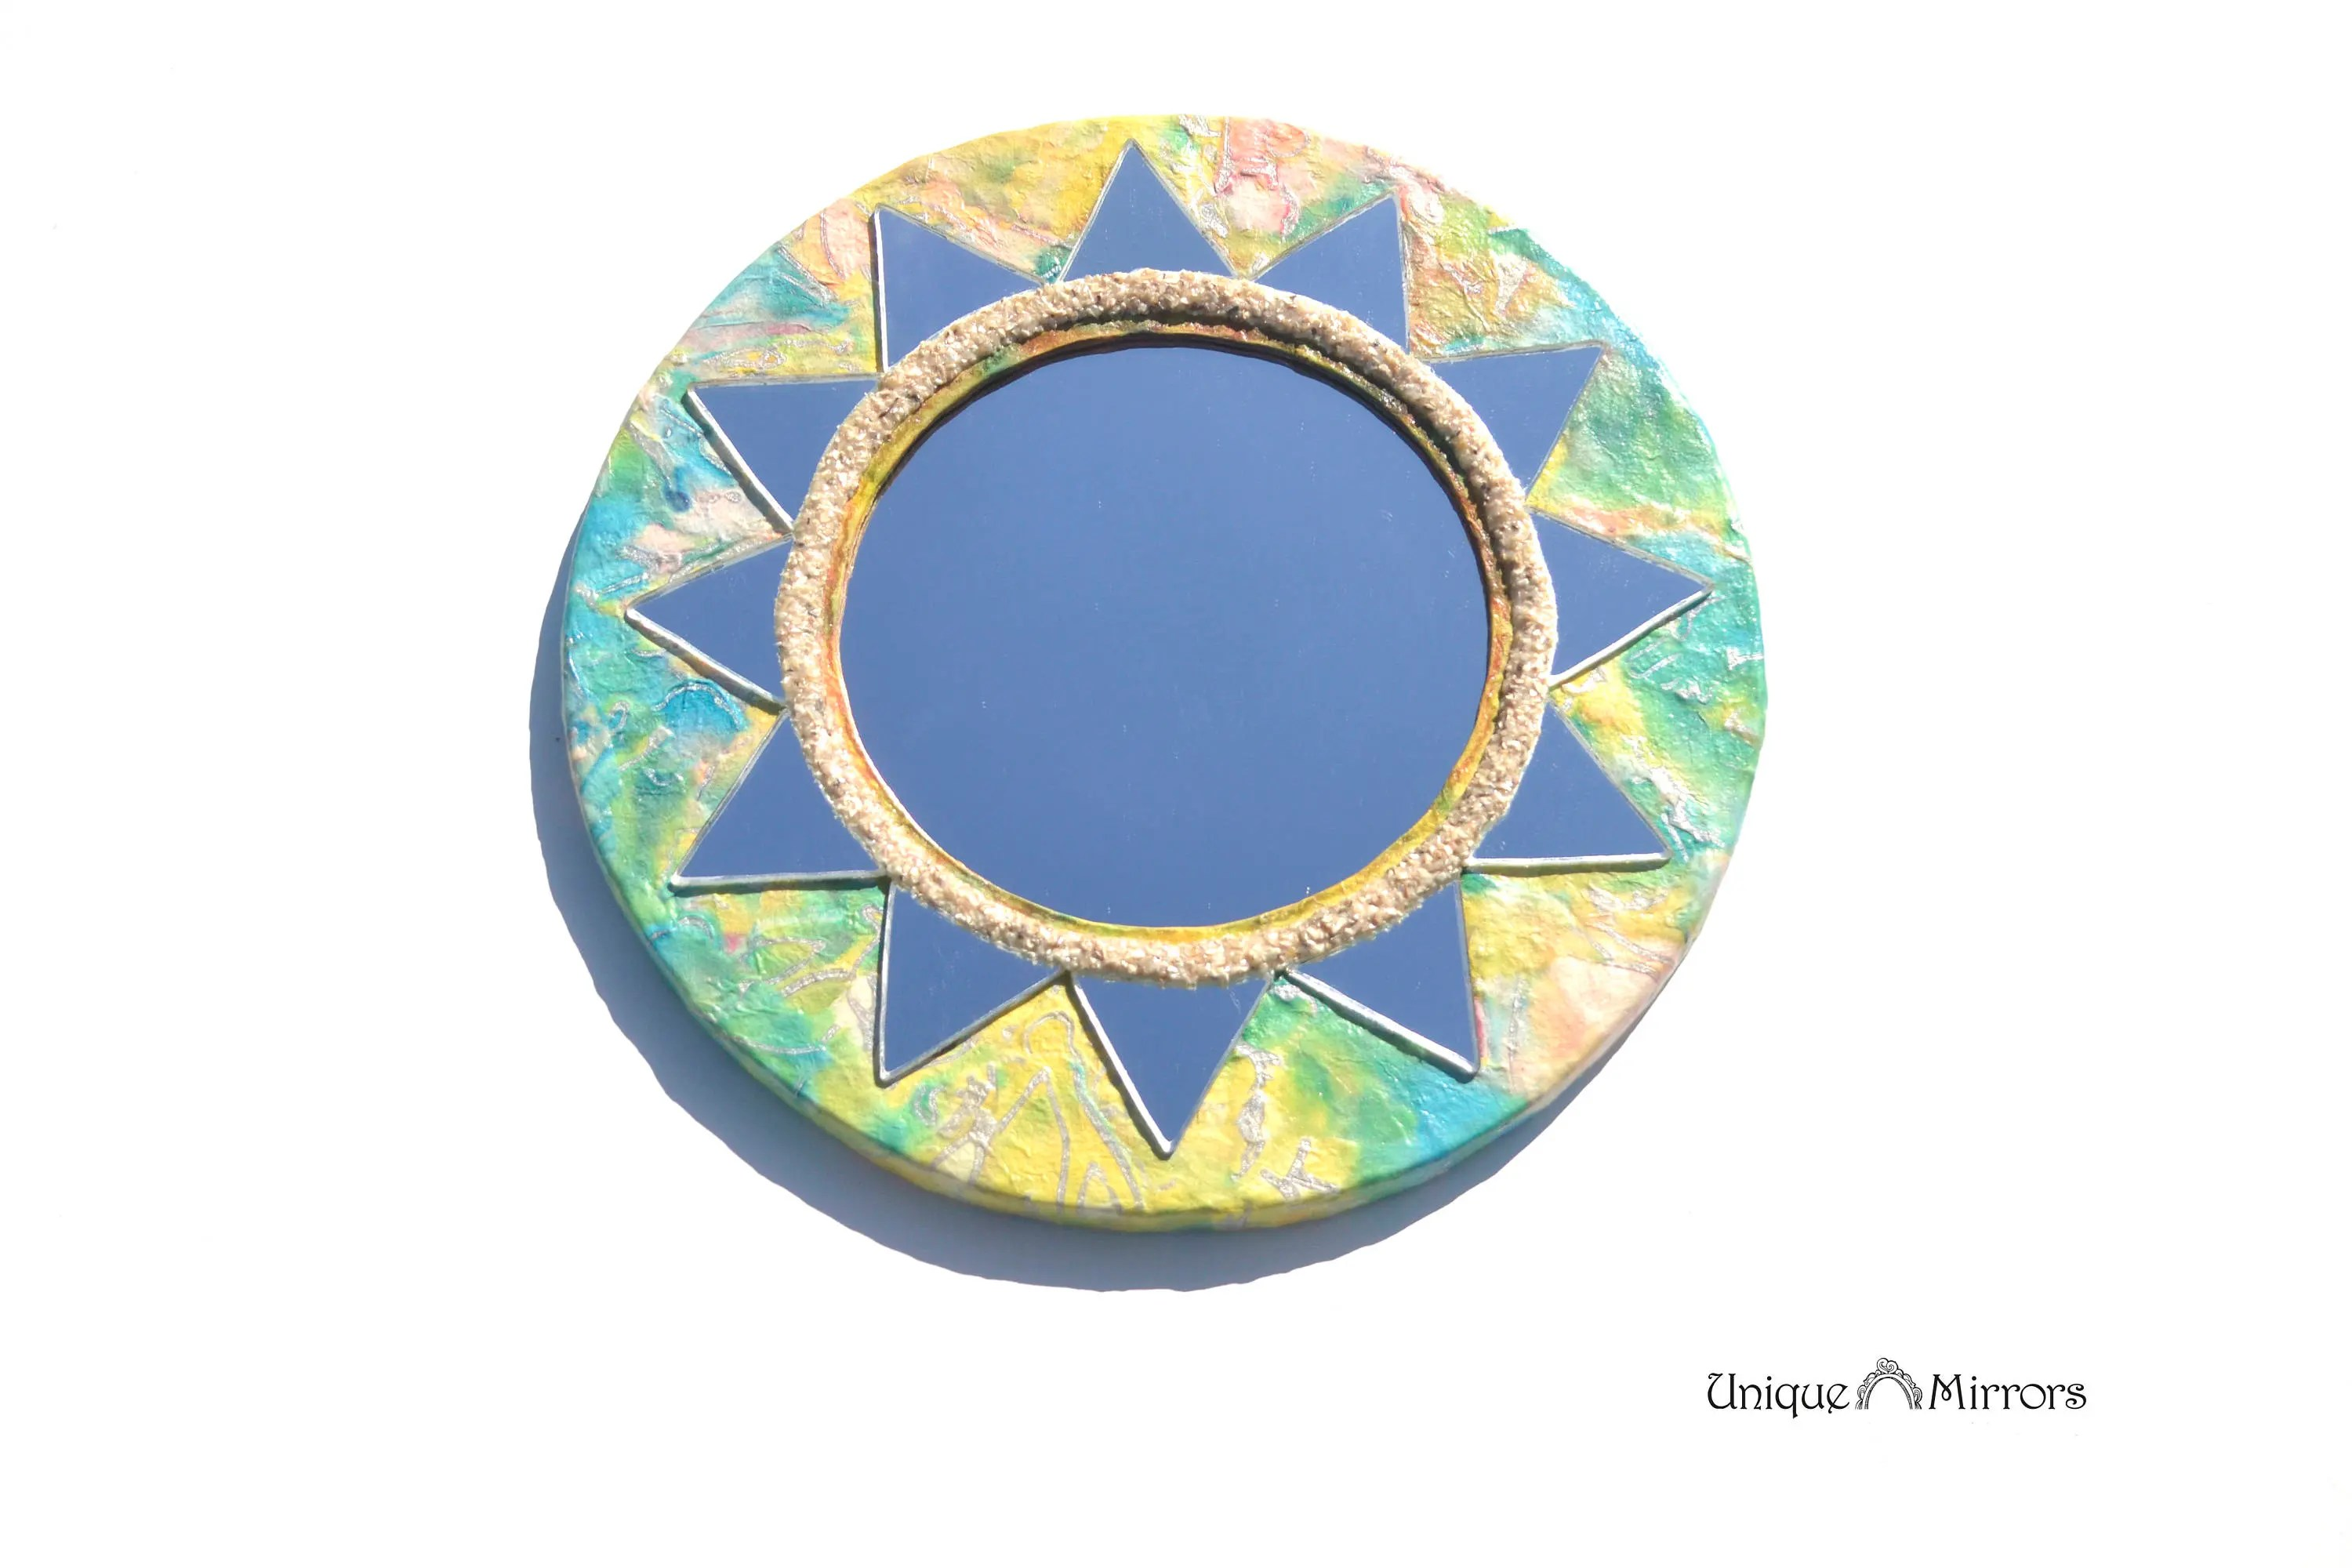 Sun Shaped Mirrors Colorful Sun Mirror Decorative Wall Mirror Large Round Mirrors Sunburst Mirror Modern Mirror Hippie Furniture Mirror For Wall